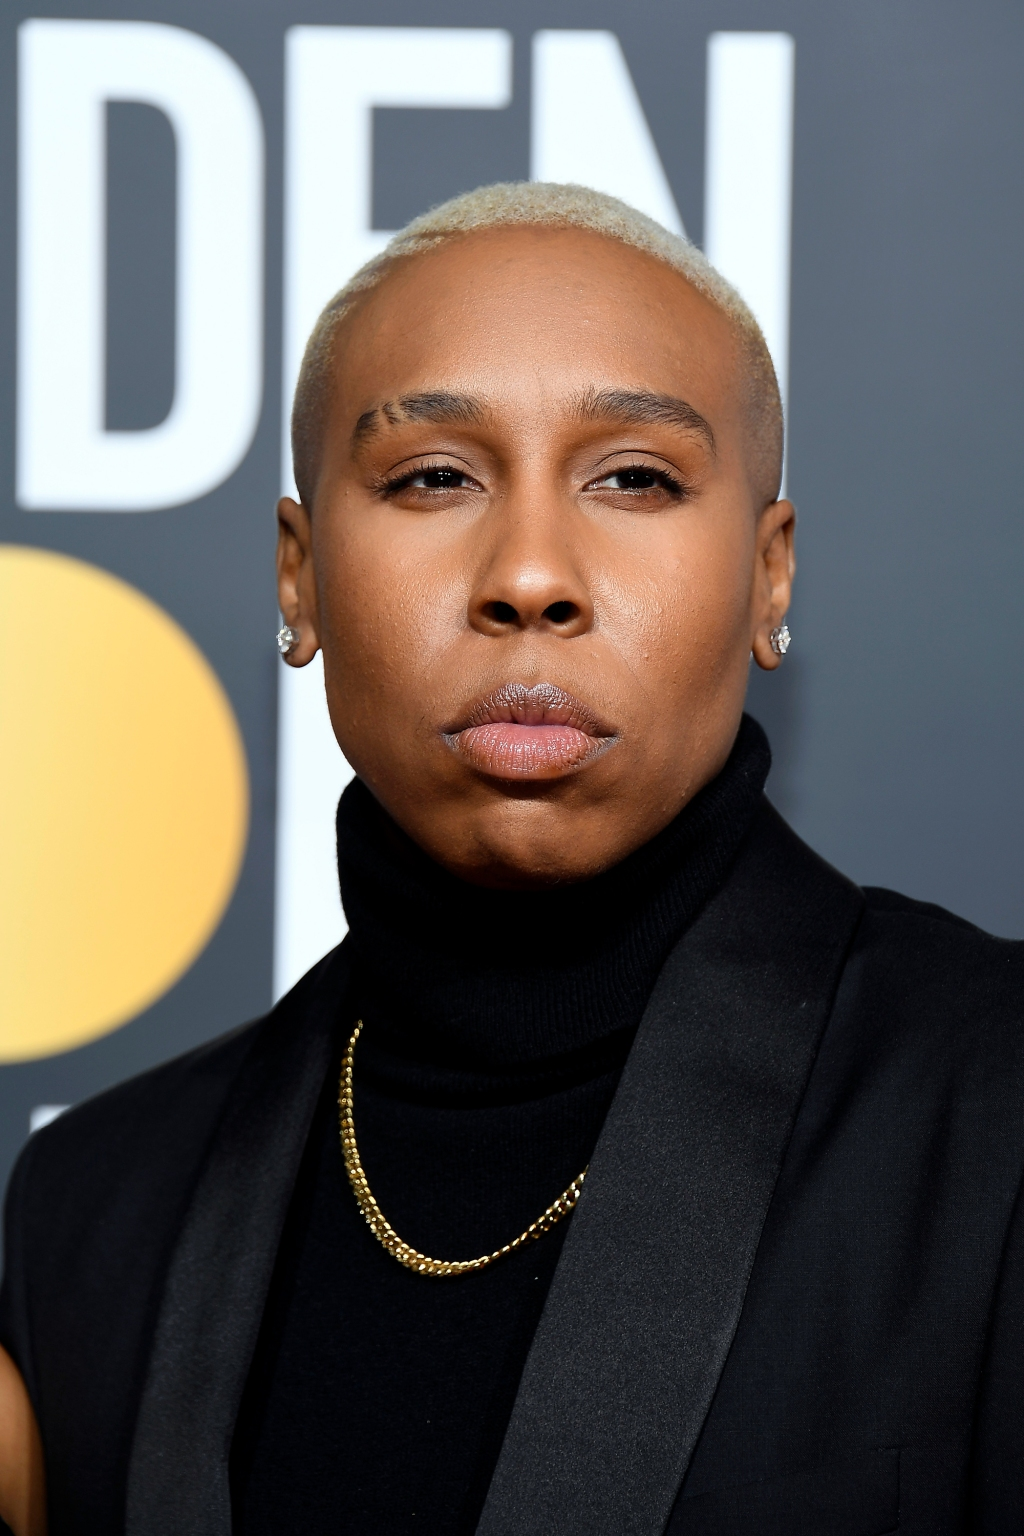 Lena Waithe arrives to the 76th Annual Golden Globe Awards held at the Beverly Hilton Hotel on January 6, 2019.